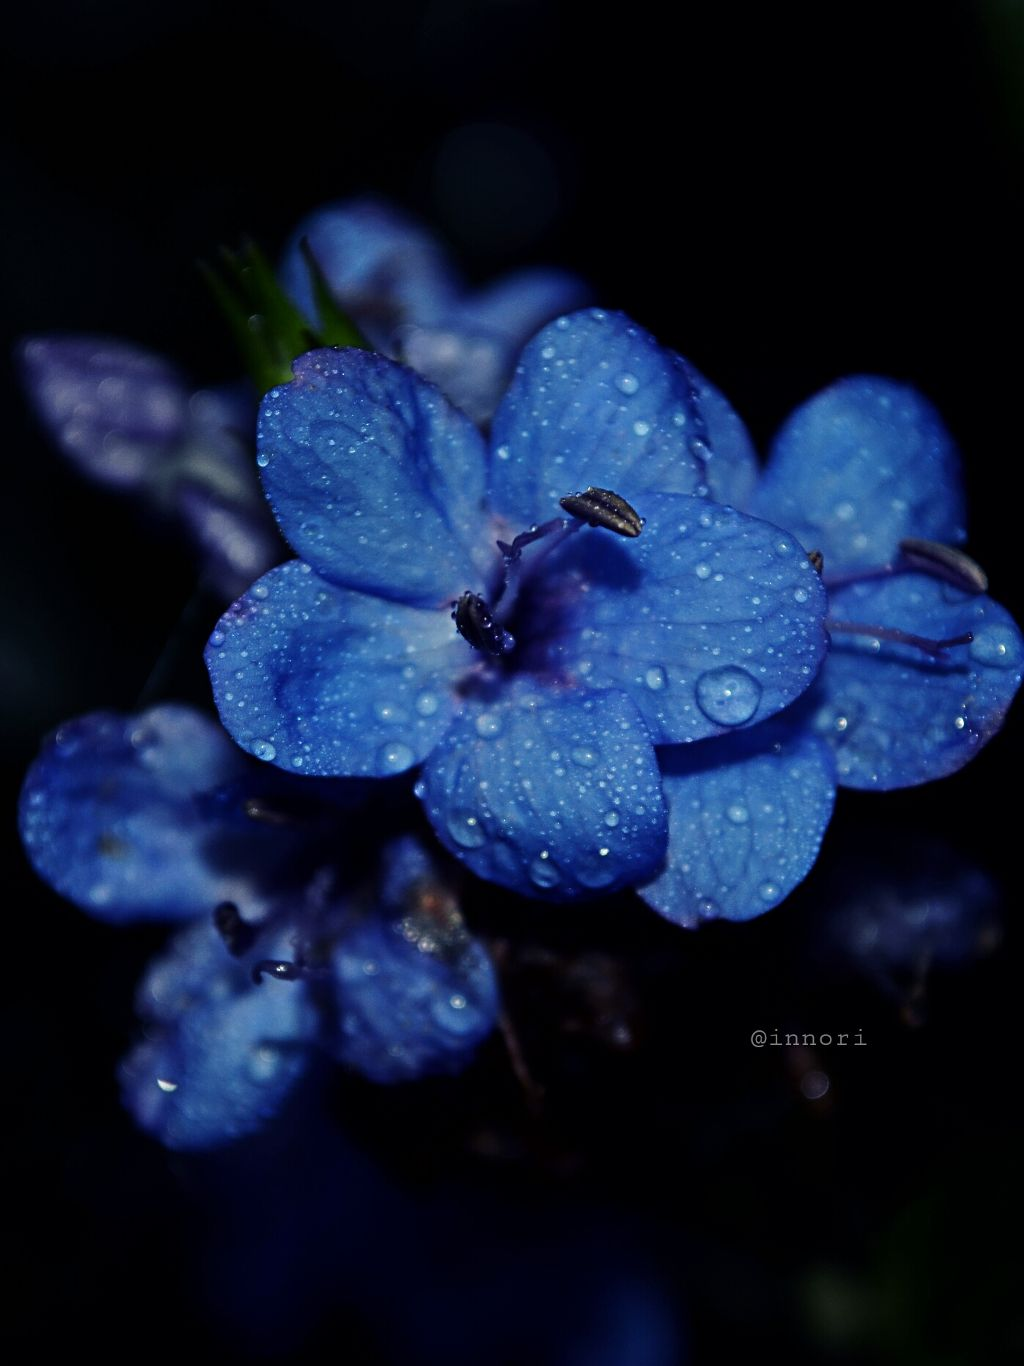 #nature #flower #photography #blue _keep reading 😉